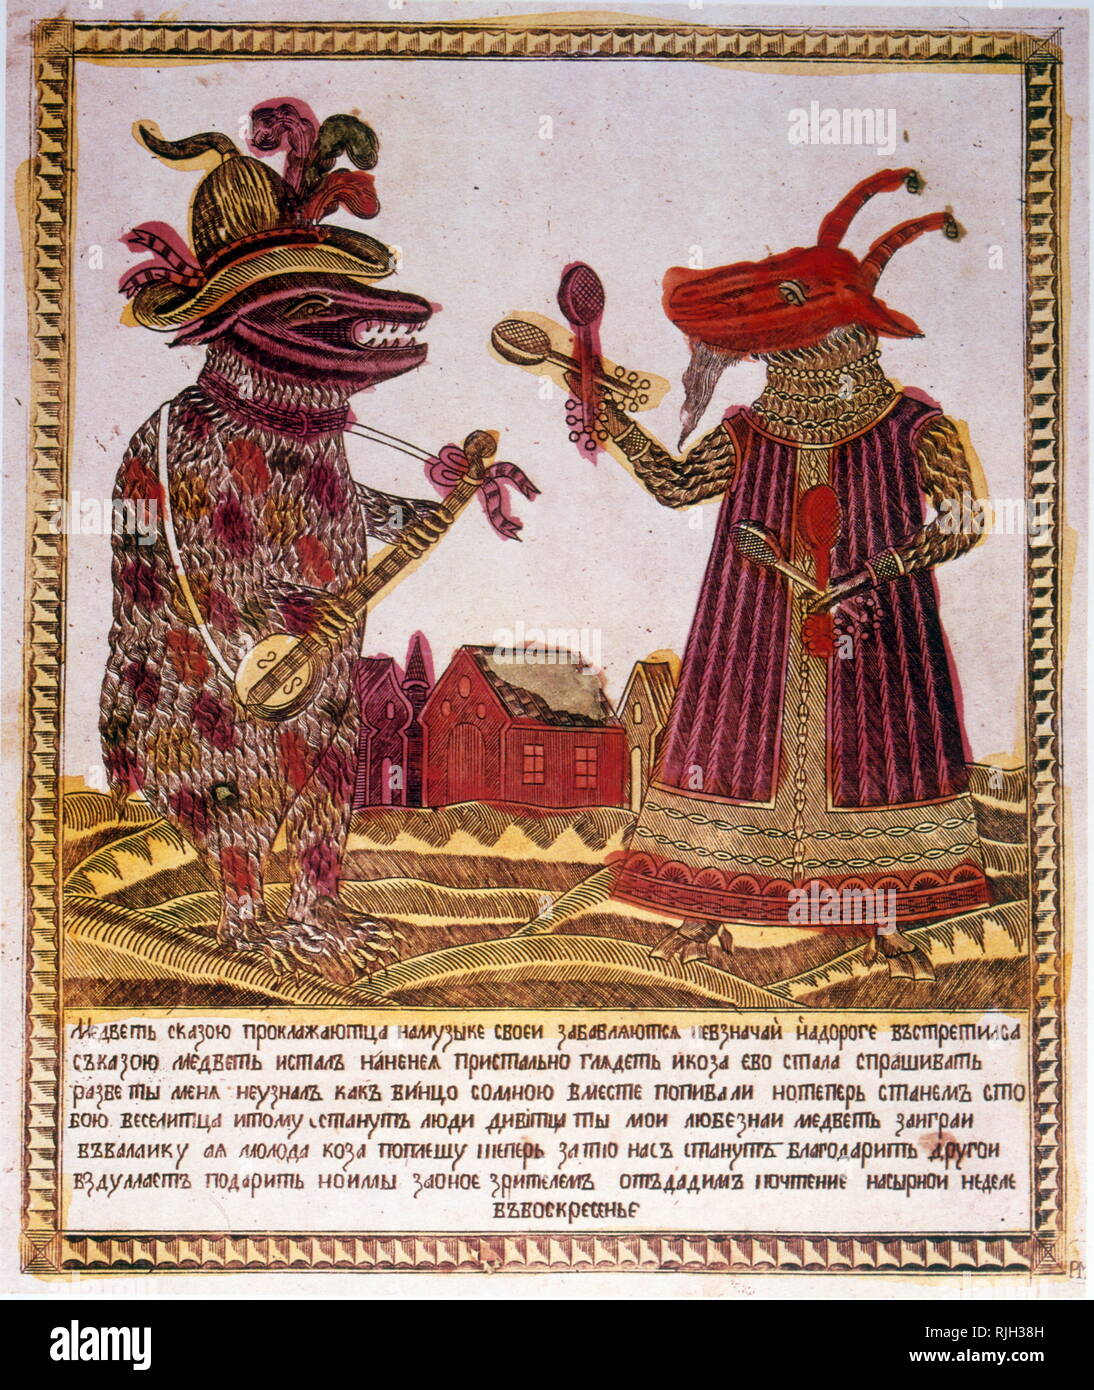 Traditional colour woodcut illustration of a story about a bear and a goat. Russian circa 1830 - Stock Image